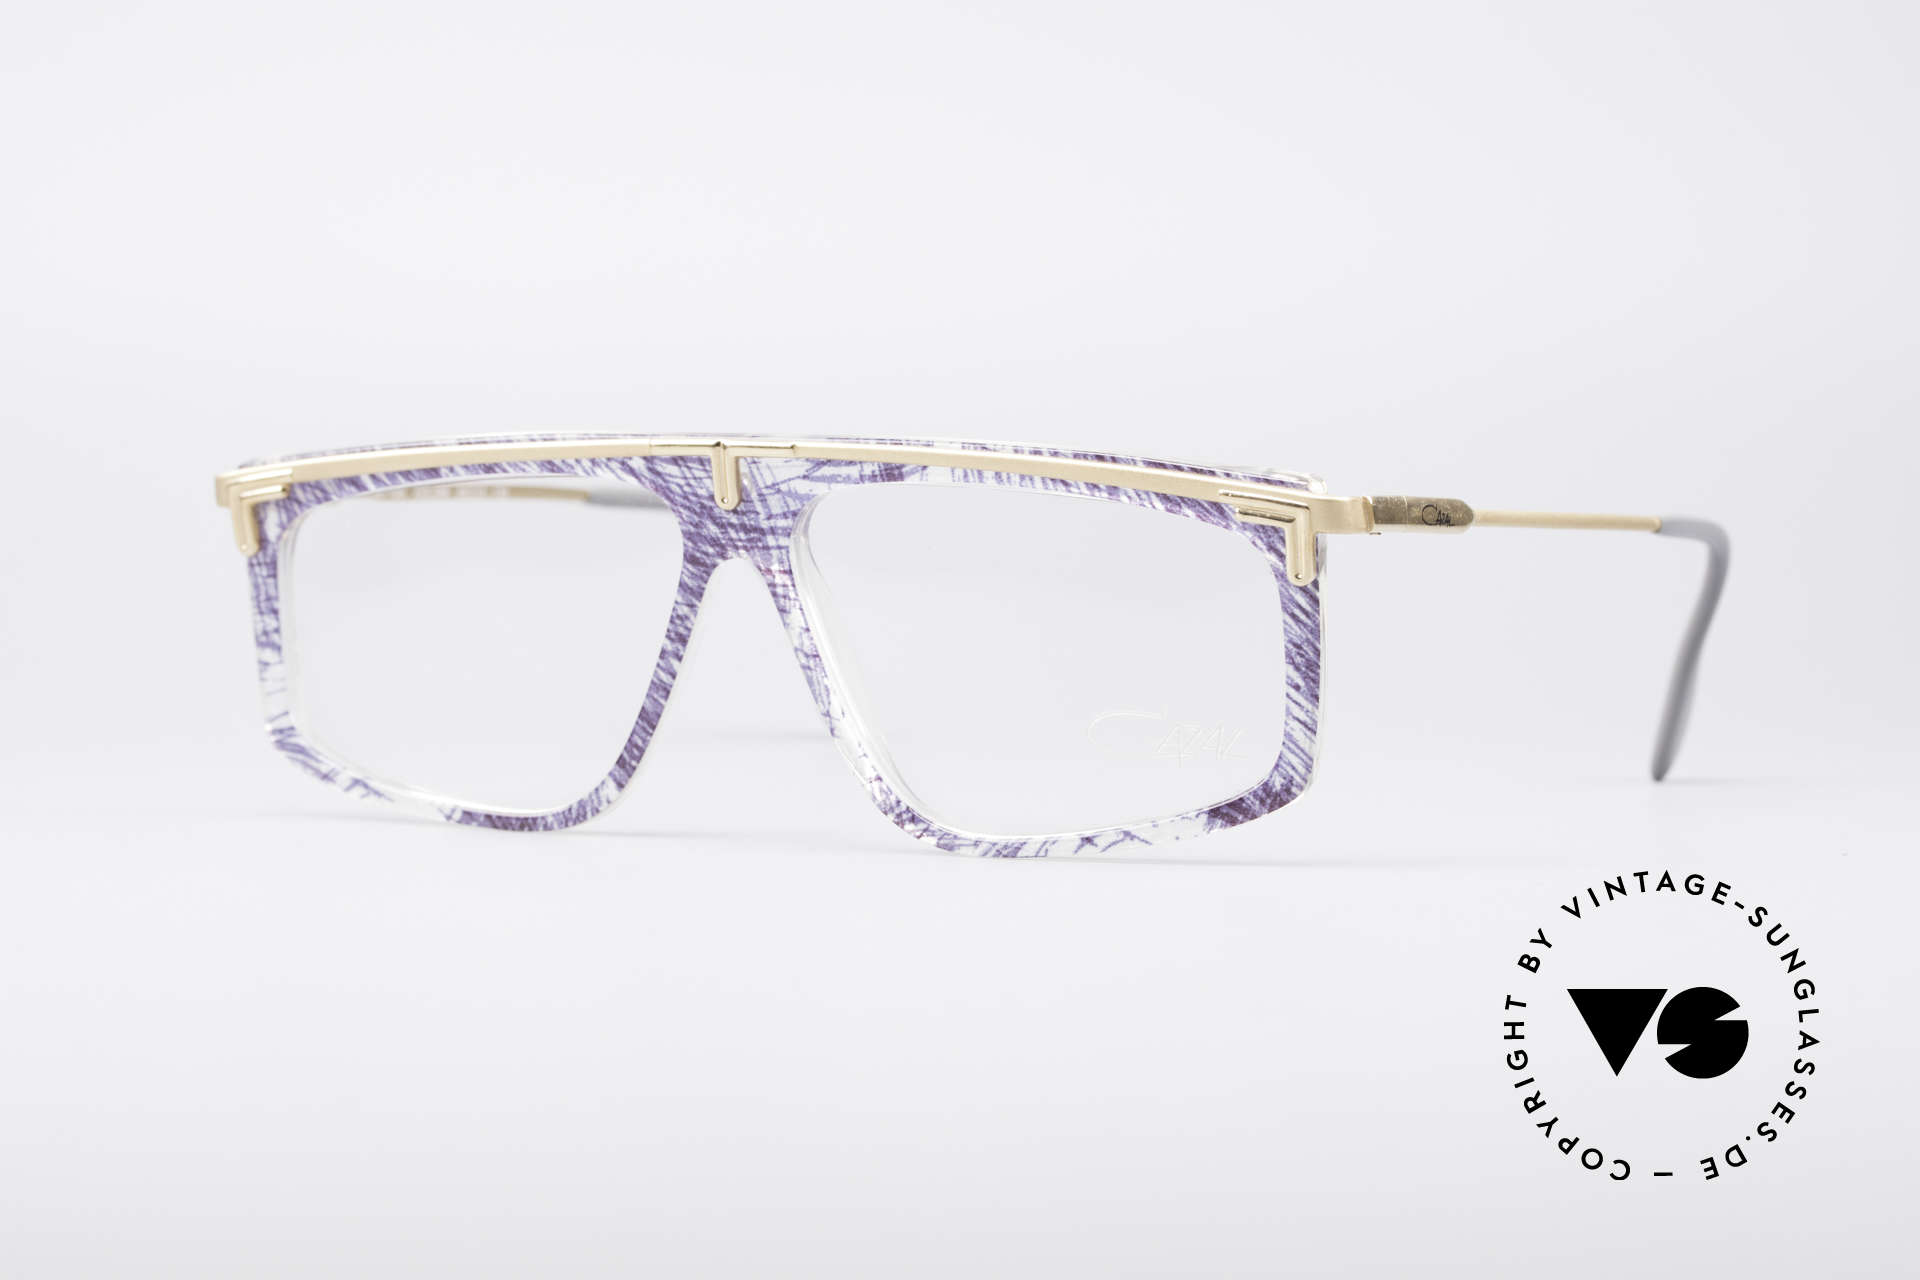 Cazal 190 Old School Hip Hop Frame, legendary vintage Cazal eyeglasses from the late 80's, Made for Men